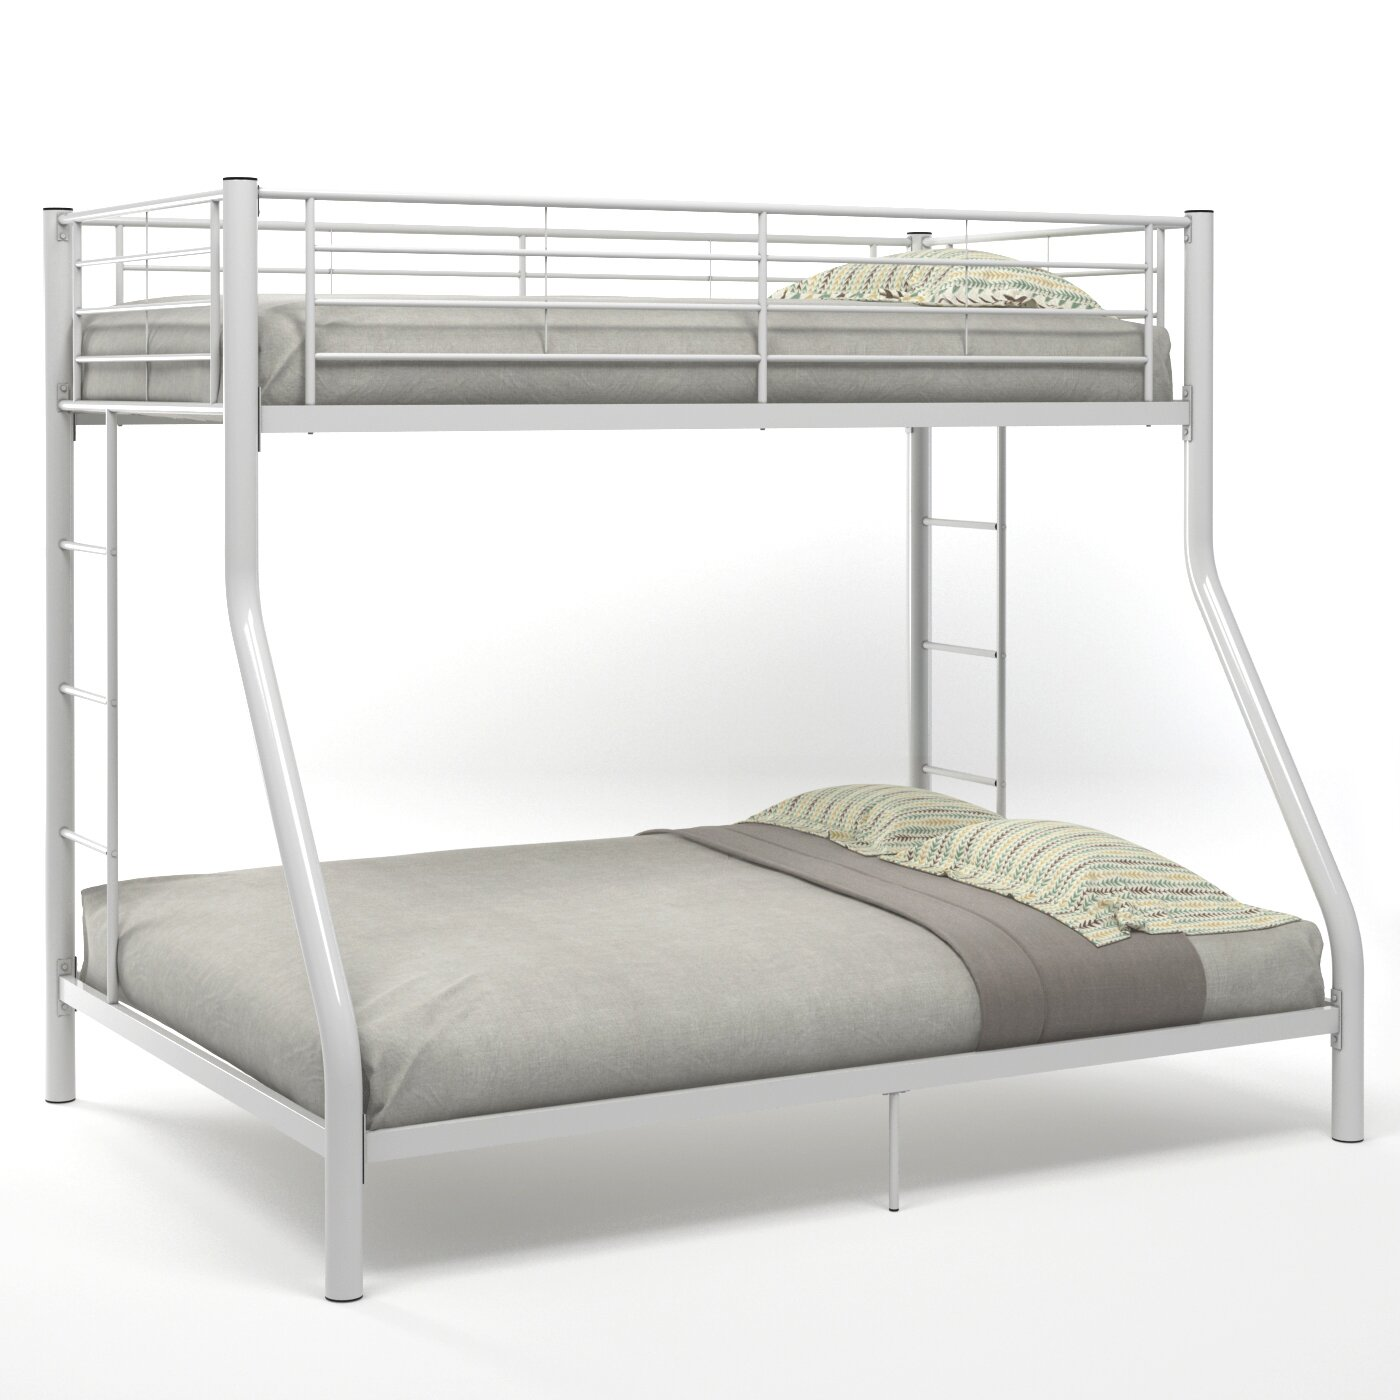 Gibson living cynthia twin over full bunk bed wayfair for Cynthia storage bed